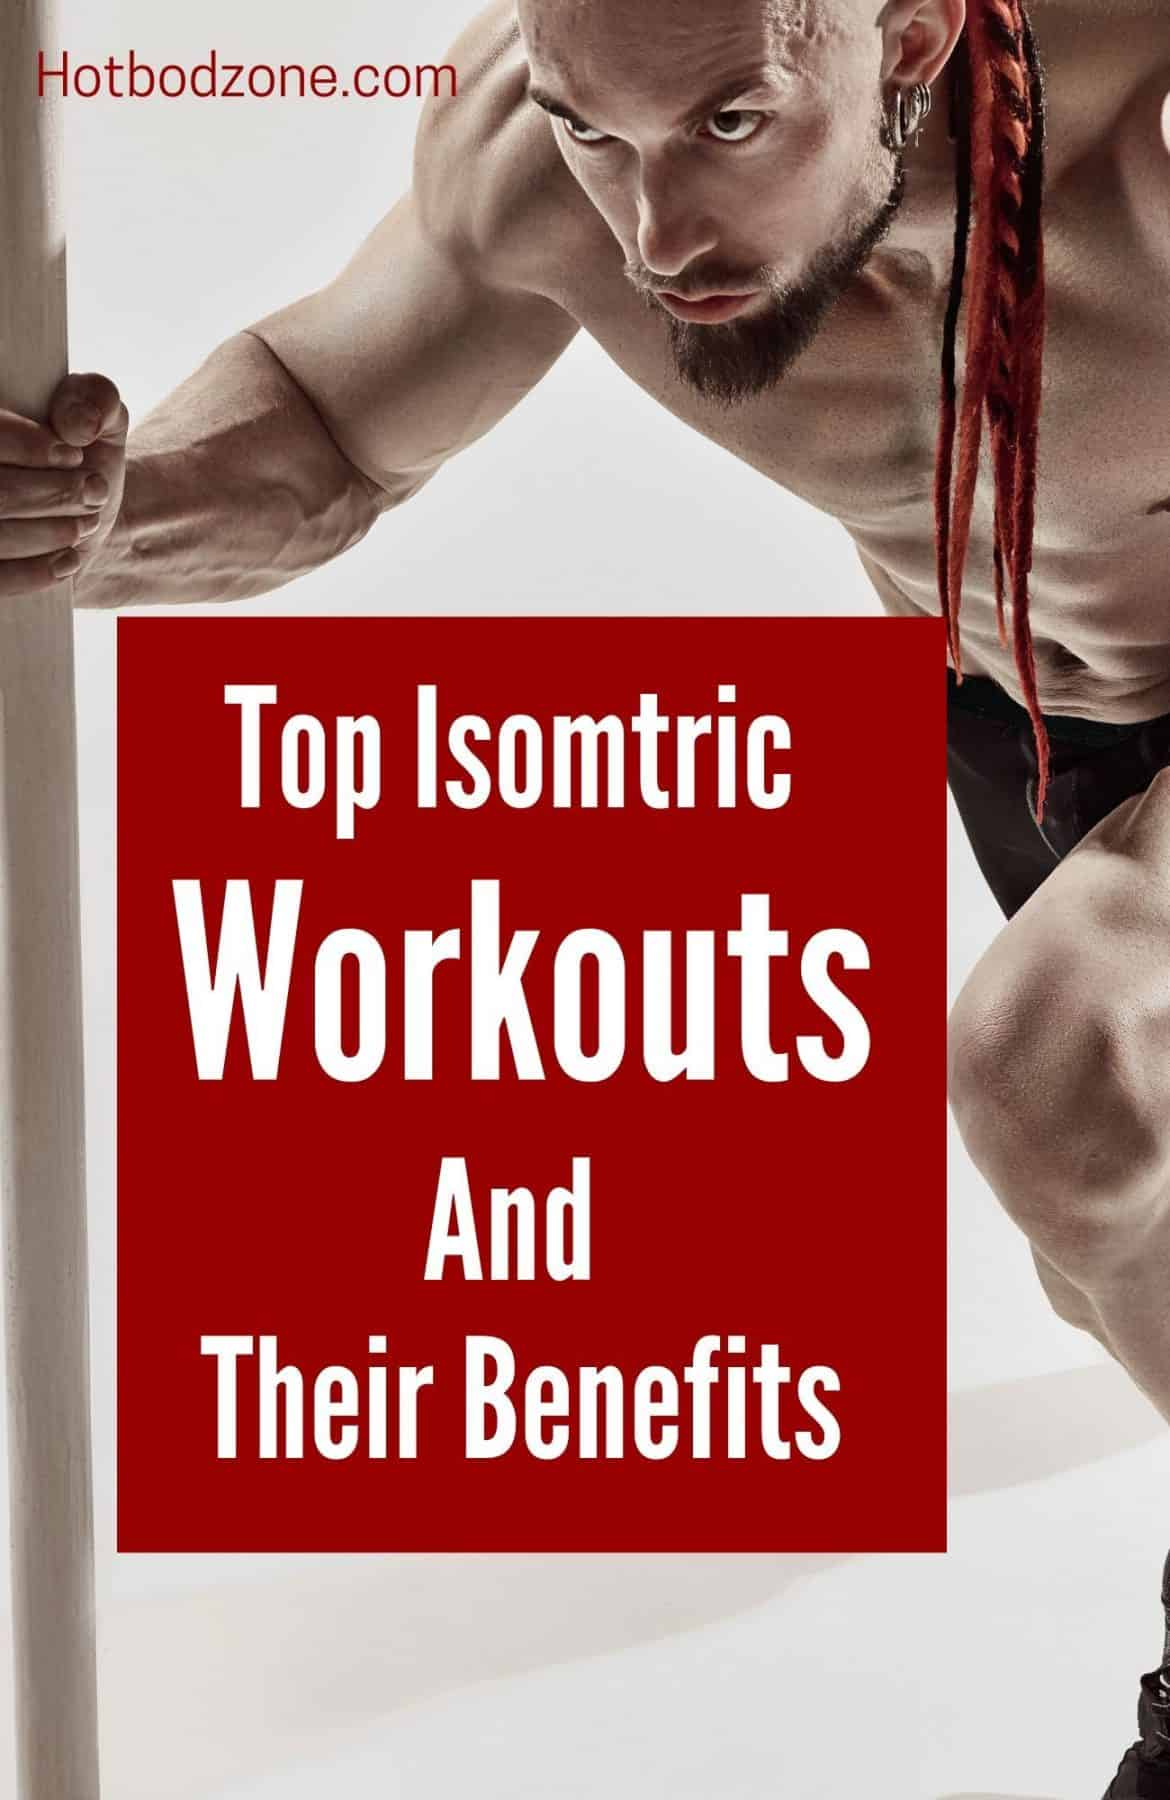 Isometric Exercises Belong in Your Workout Routine - Hot Bod